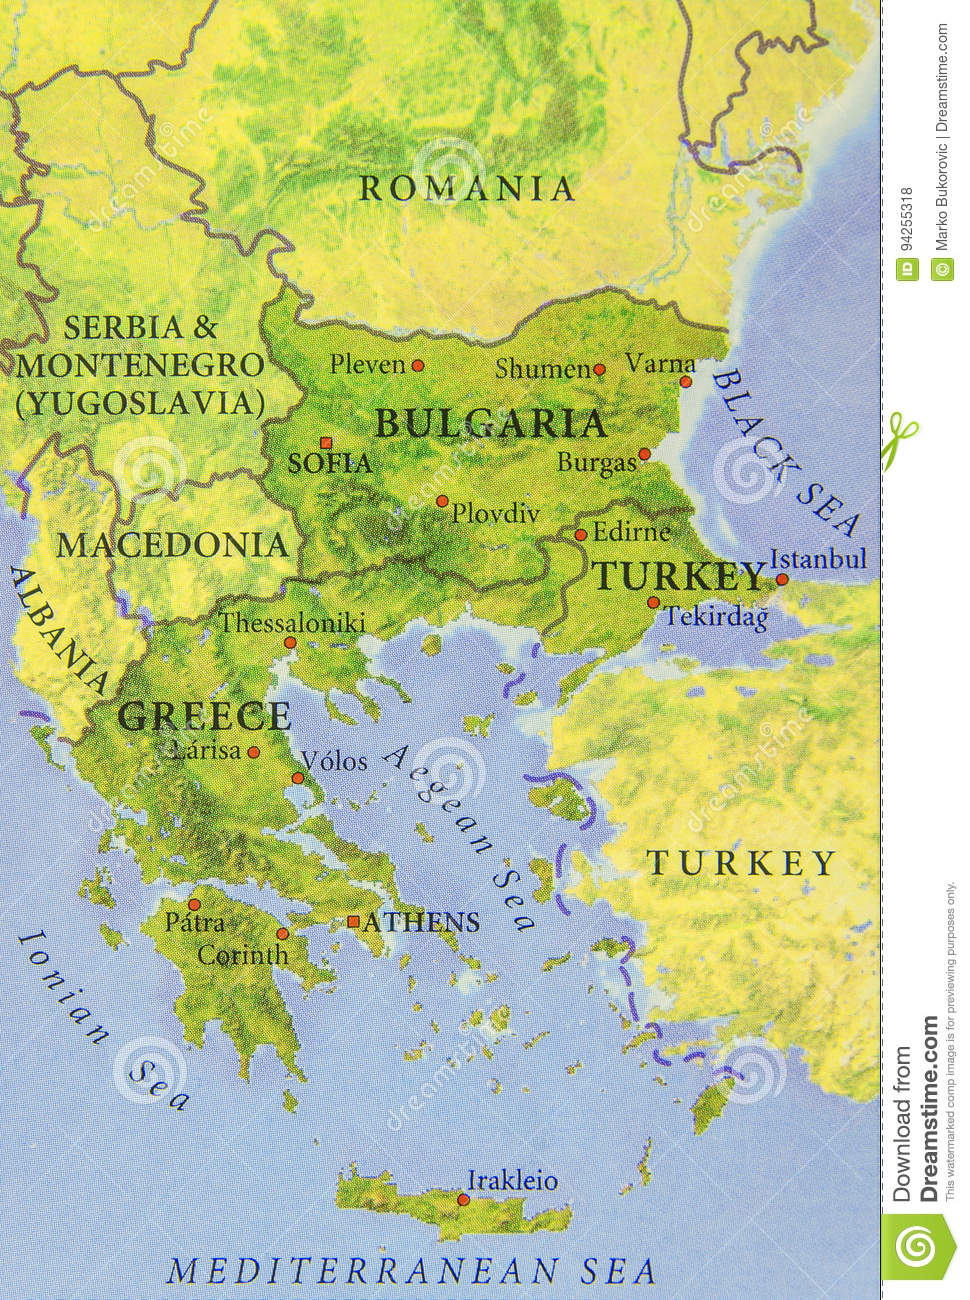 Turkey And Greece Map.Geographic Map Of European Country Bulgaria Turkey And Greece Stock